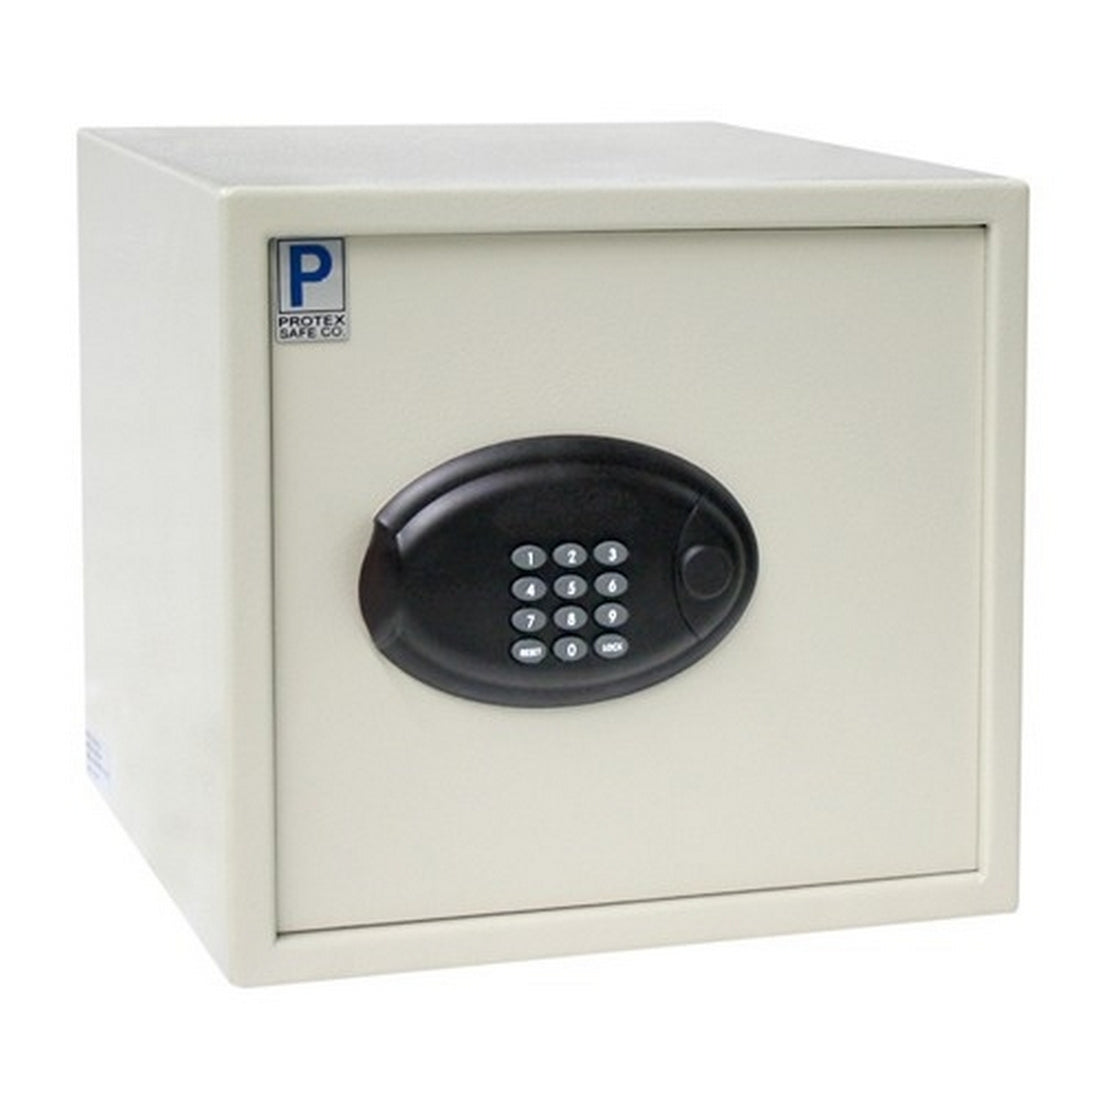 Protex Safe BG-34 Hotel/Personal Electronic Safe